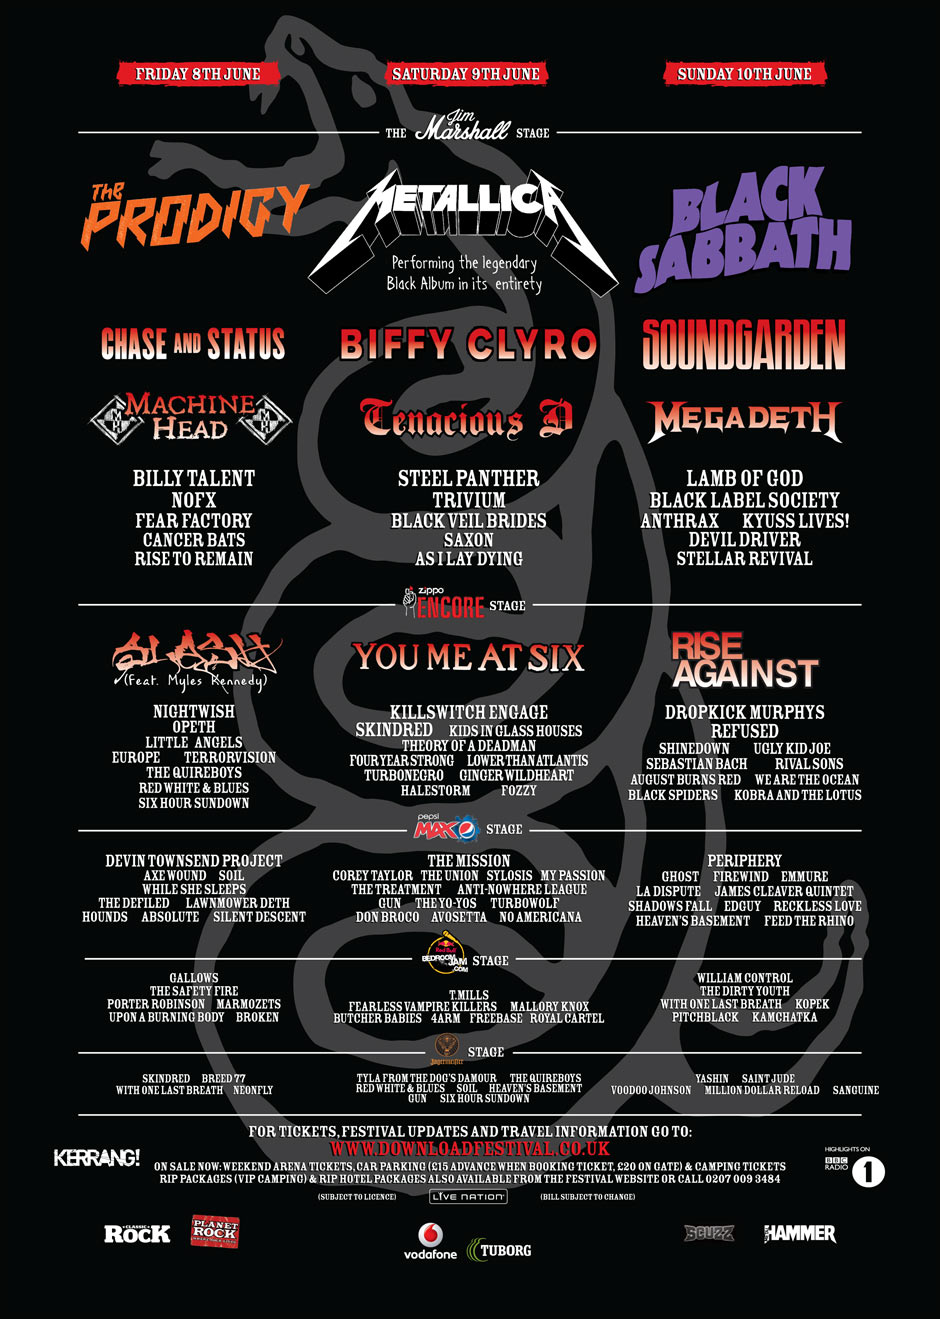 Download Festival Poster 2nd May 2012